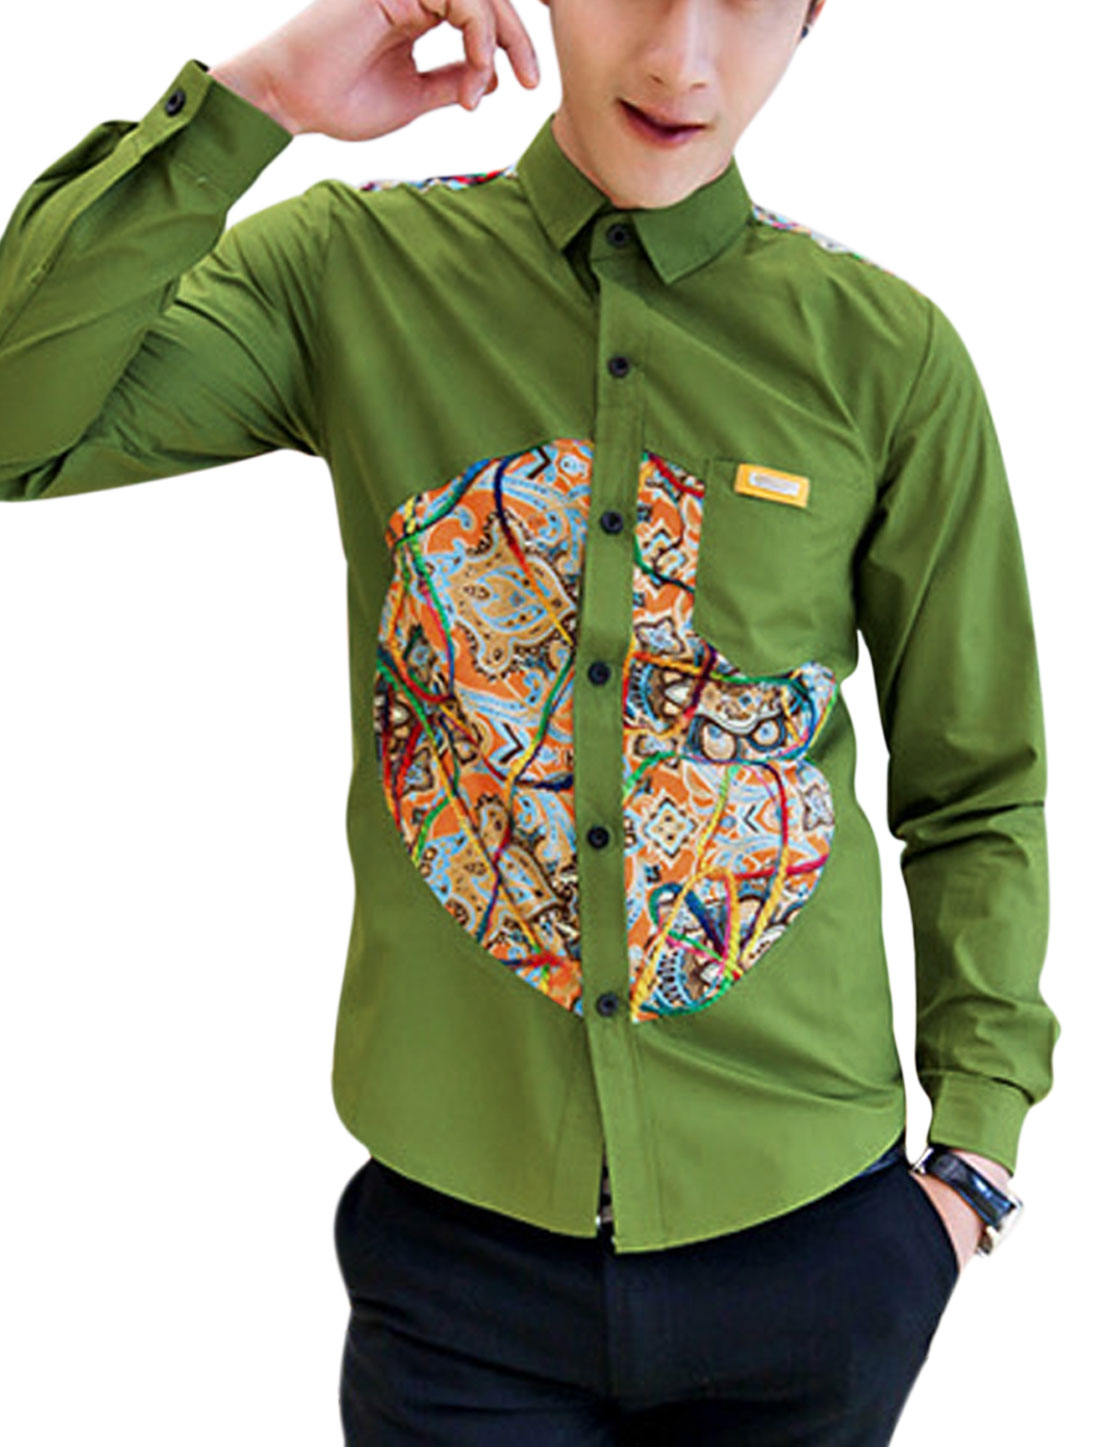 Men Casual Contrast Novelty Print Embroidery Decor Long Sleeves Shirt Olive Green M